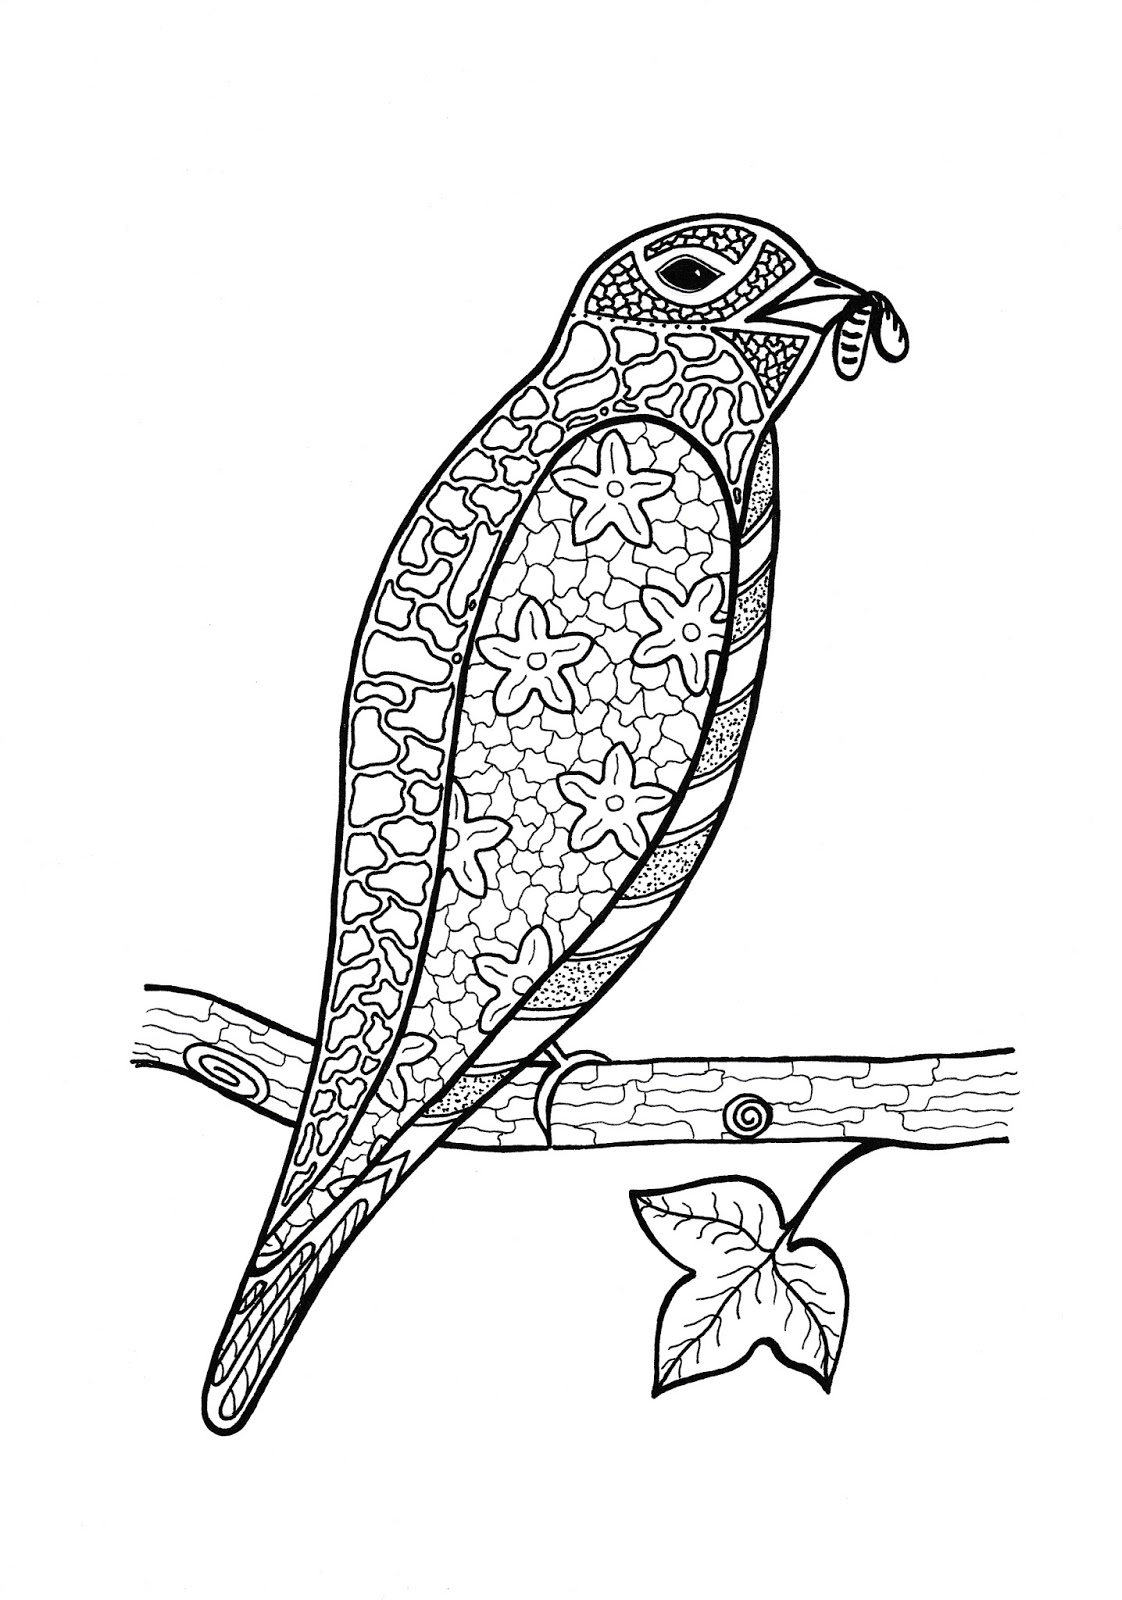 Better Budgeting: Free Coloring Pages: Bird on Tree Branch